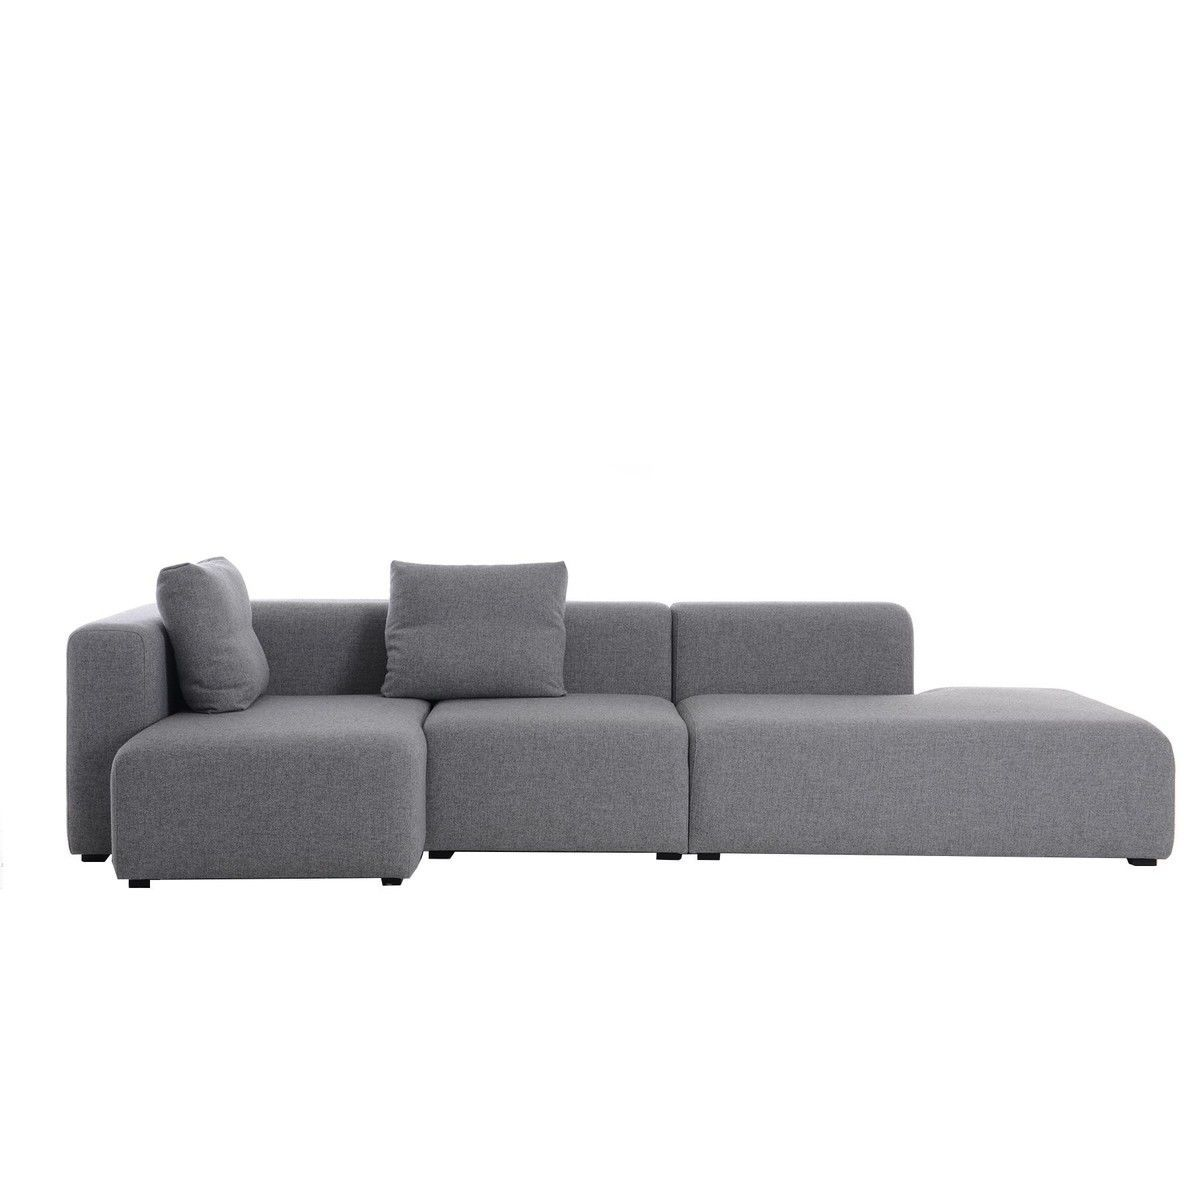 mags lounge canap chaise longue gauche hay. Black Bedroom Furniture Sets. Home Design Ideas